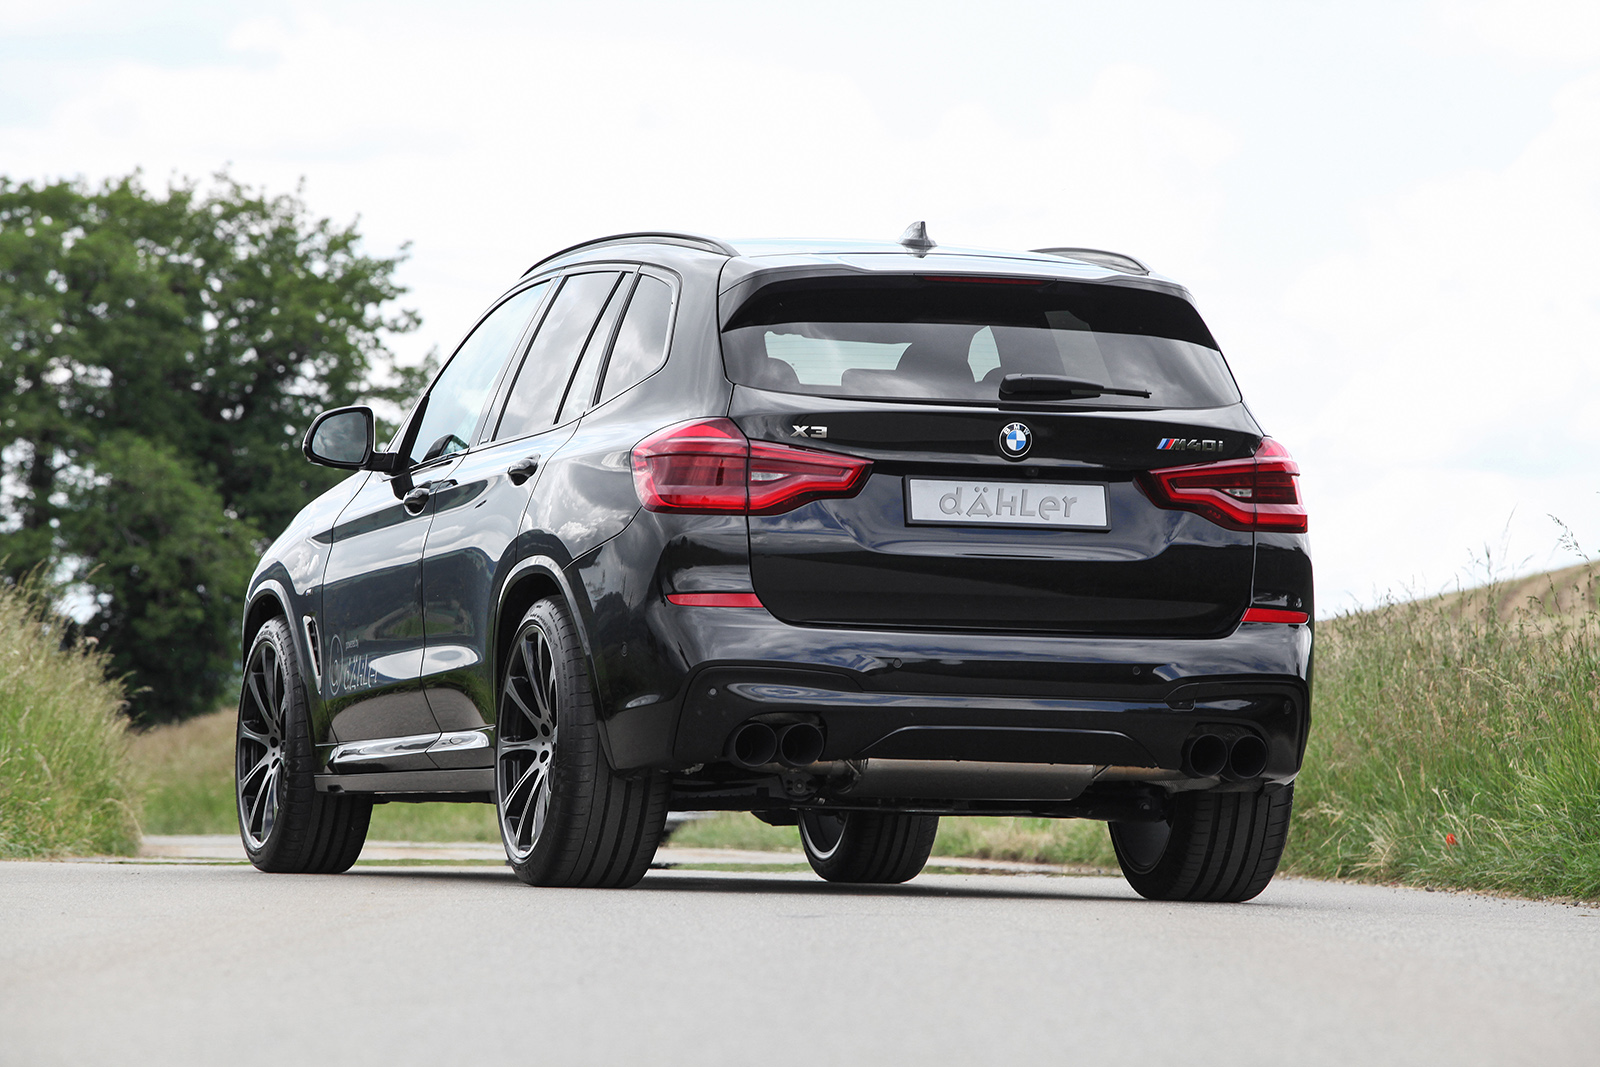 BMW X3 (G01) «dÄHLer competition line»